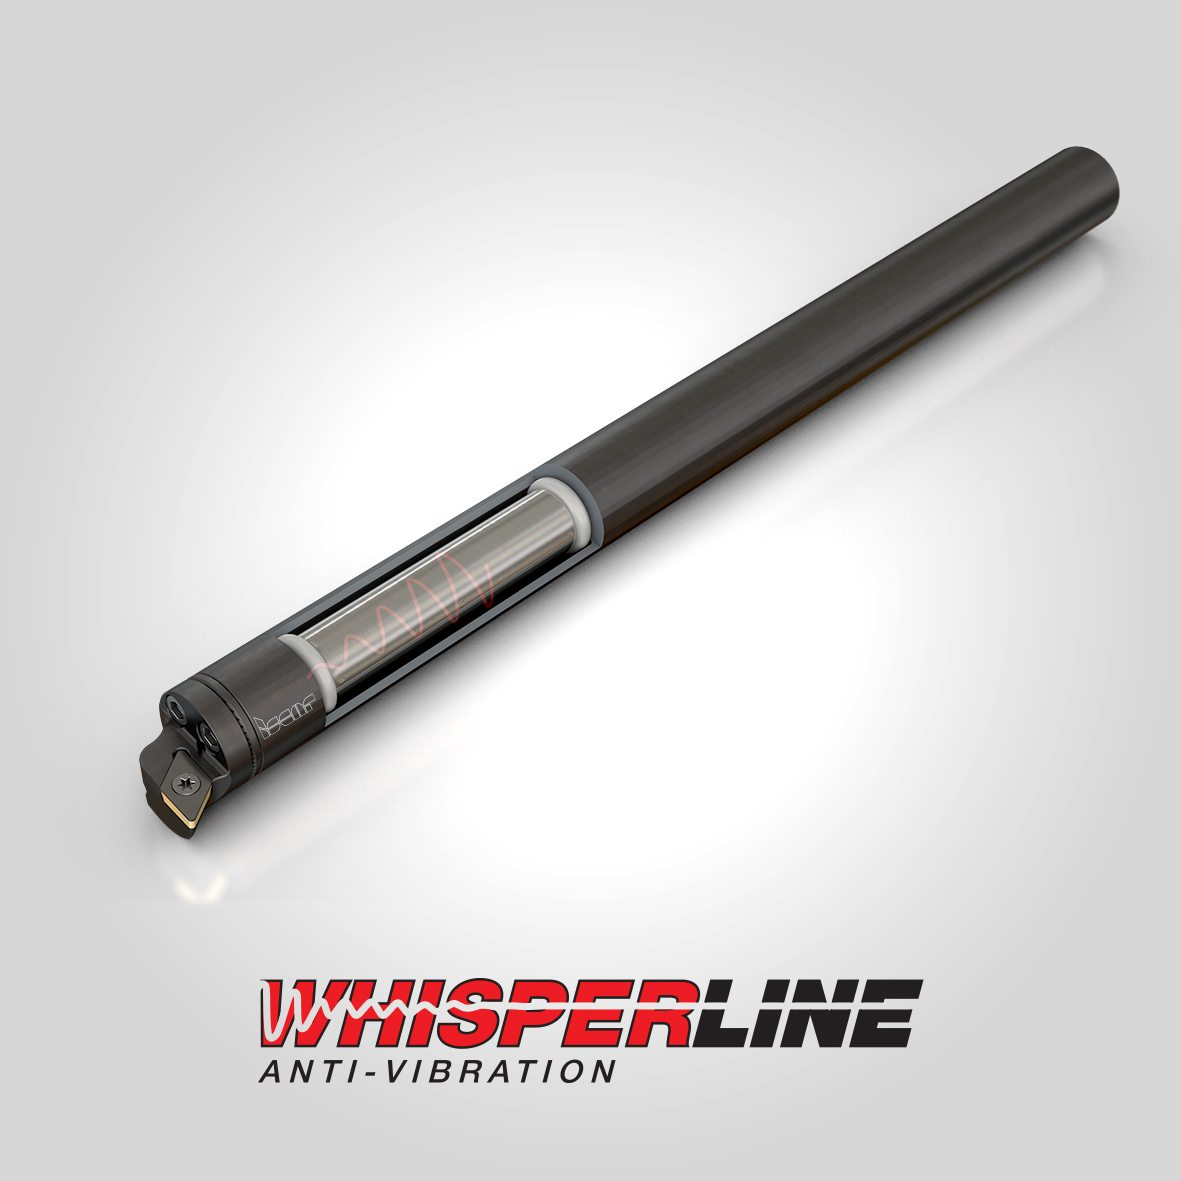 ISCAR Whisper – a Quiet Revolution in Anti-Vibration Tools